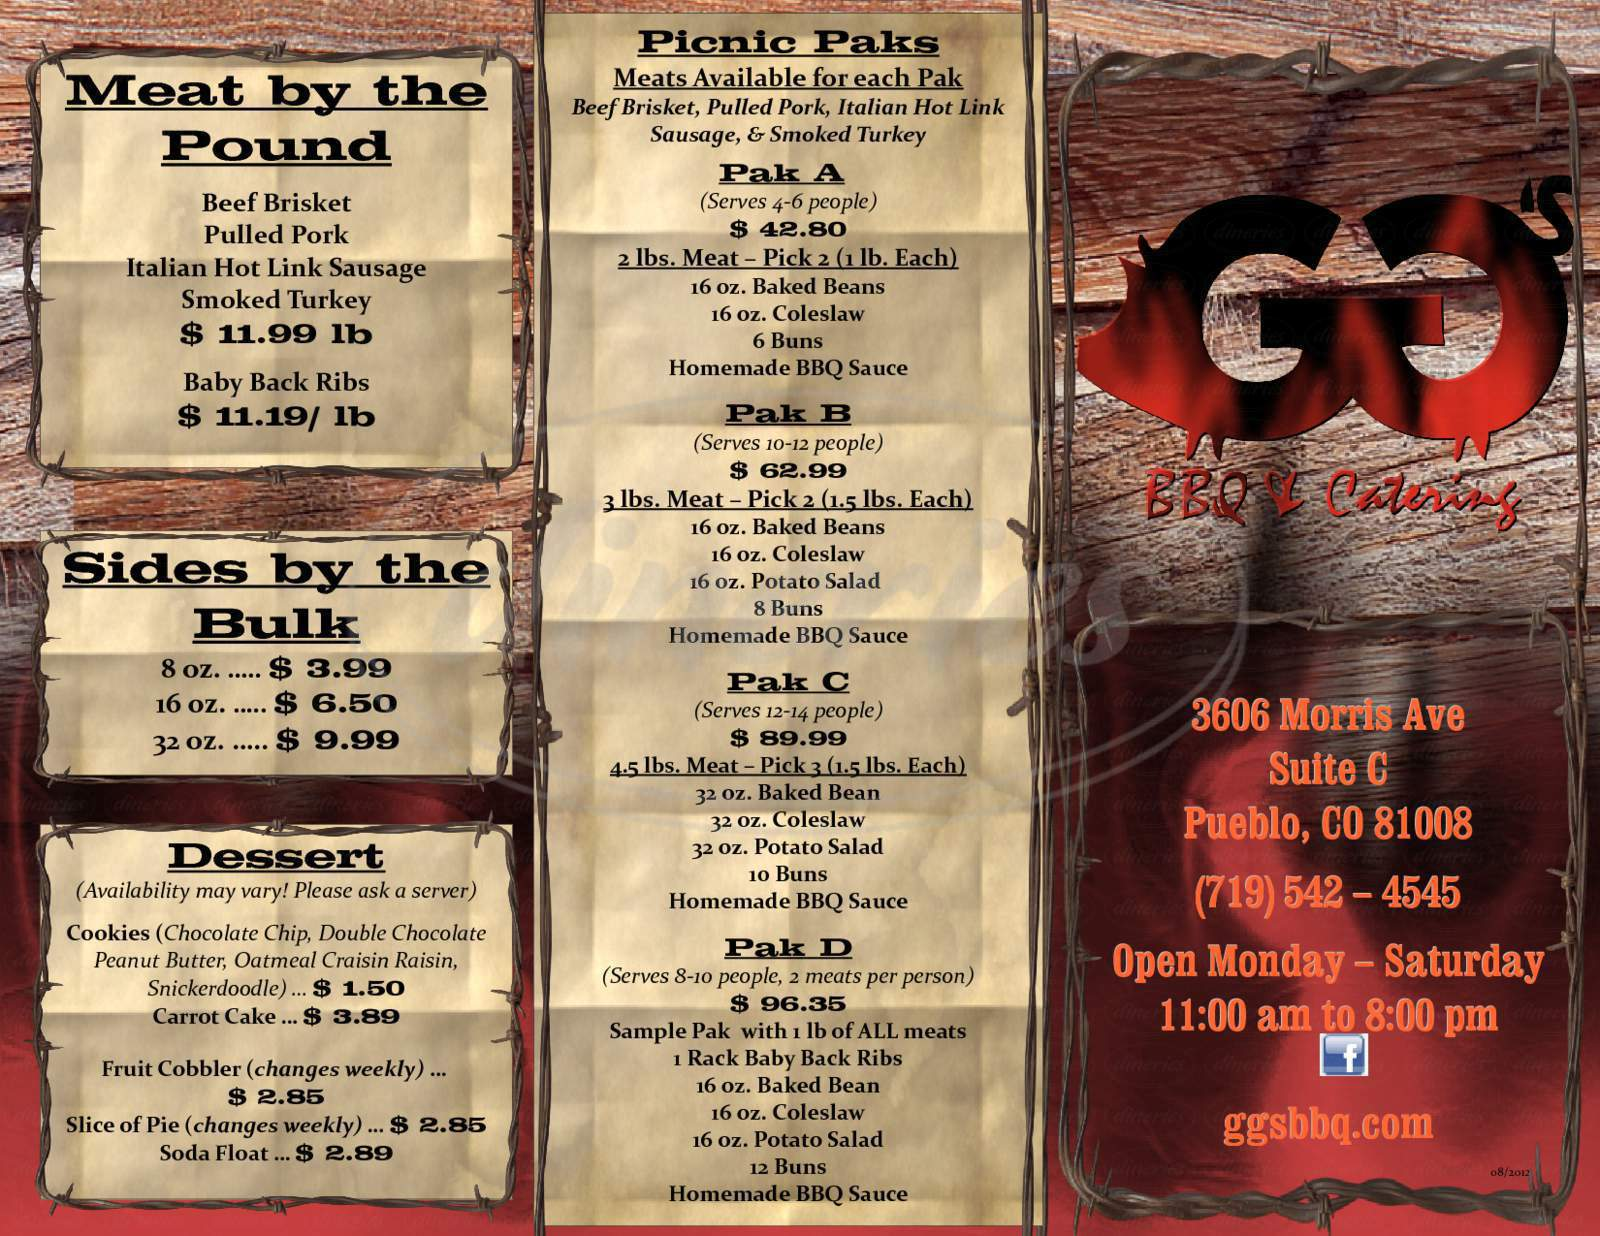 menu for GG's BBQ & Catering